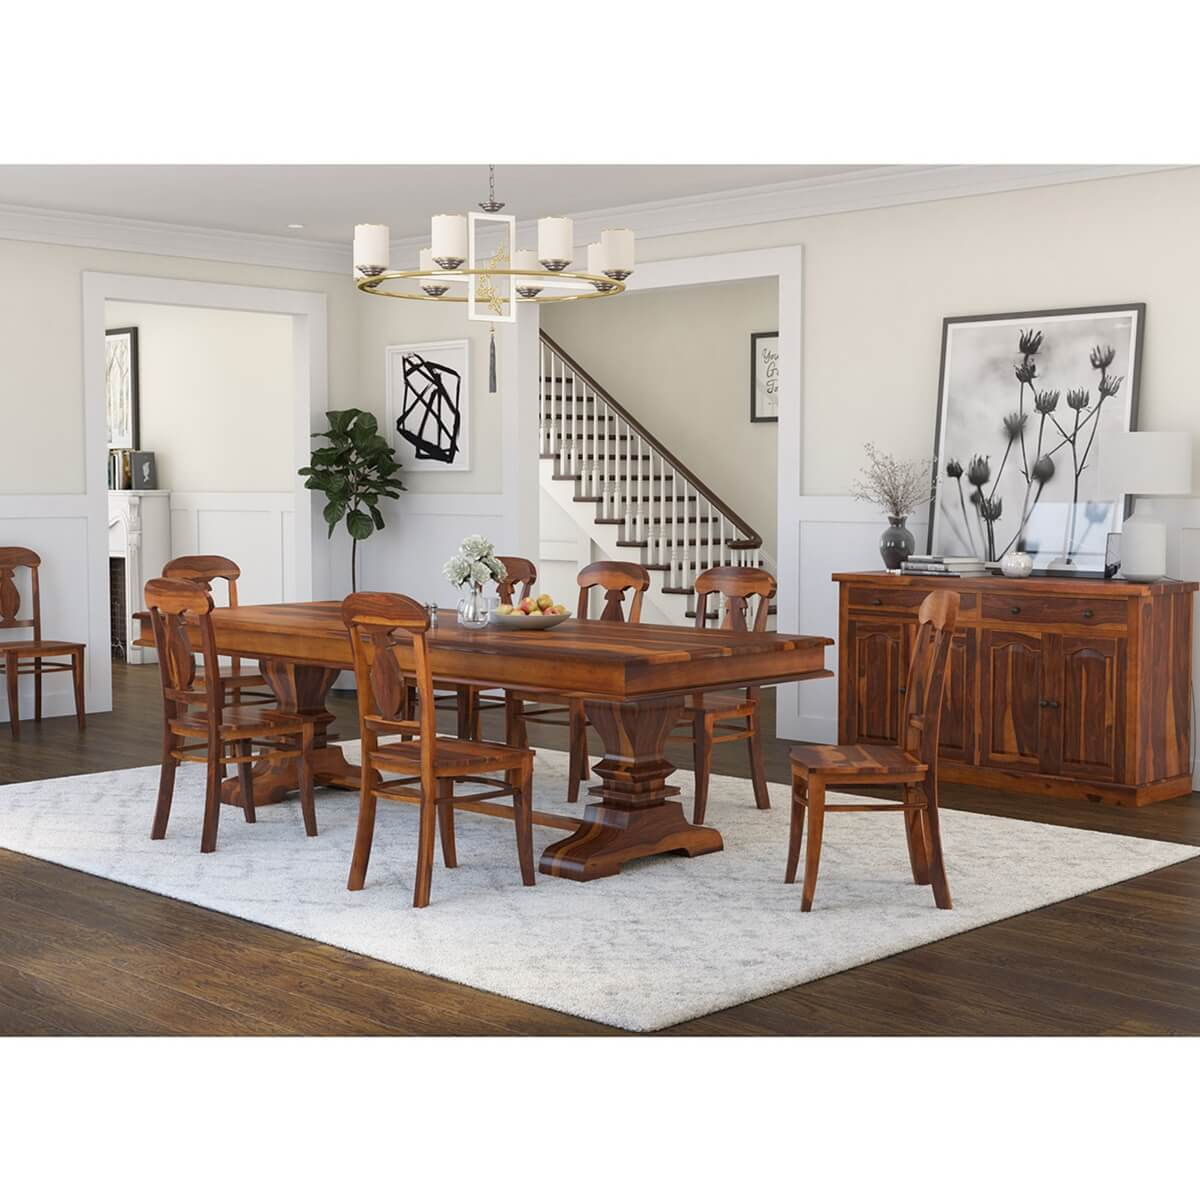 6 piece living room set center table decoration ideas tiraspol traditional rustic solid wood dining hover to zoom